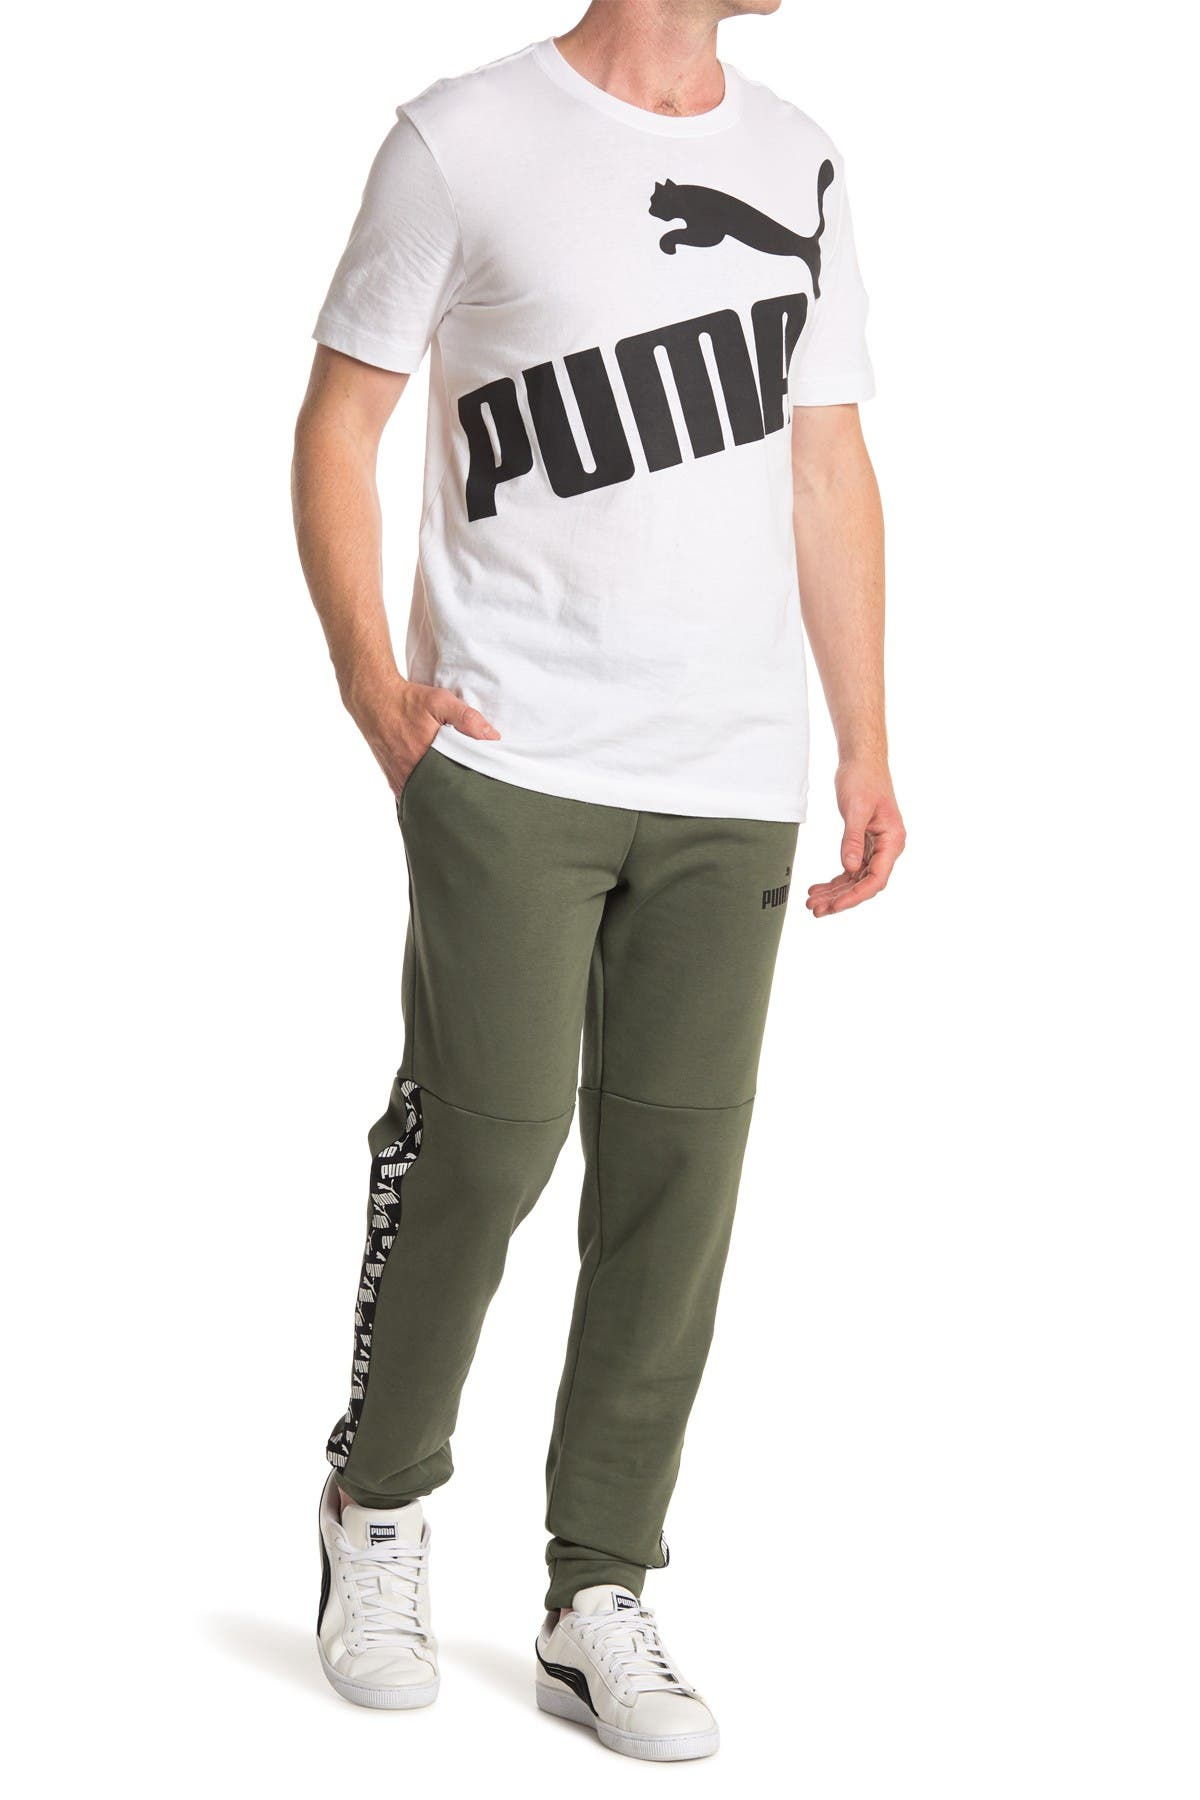 Image of PUMA Amplified Pants